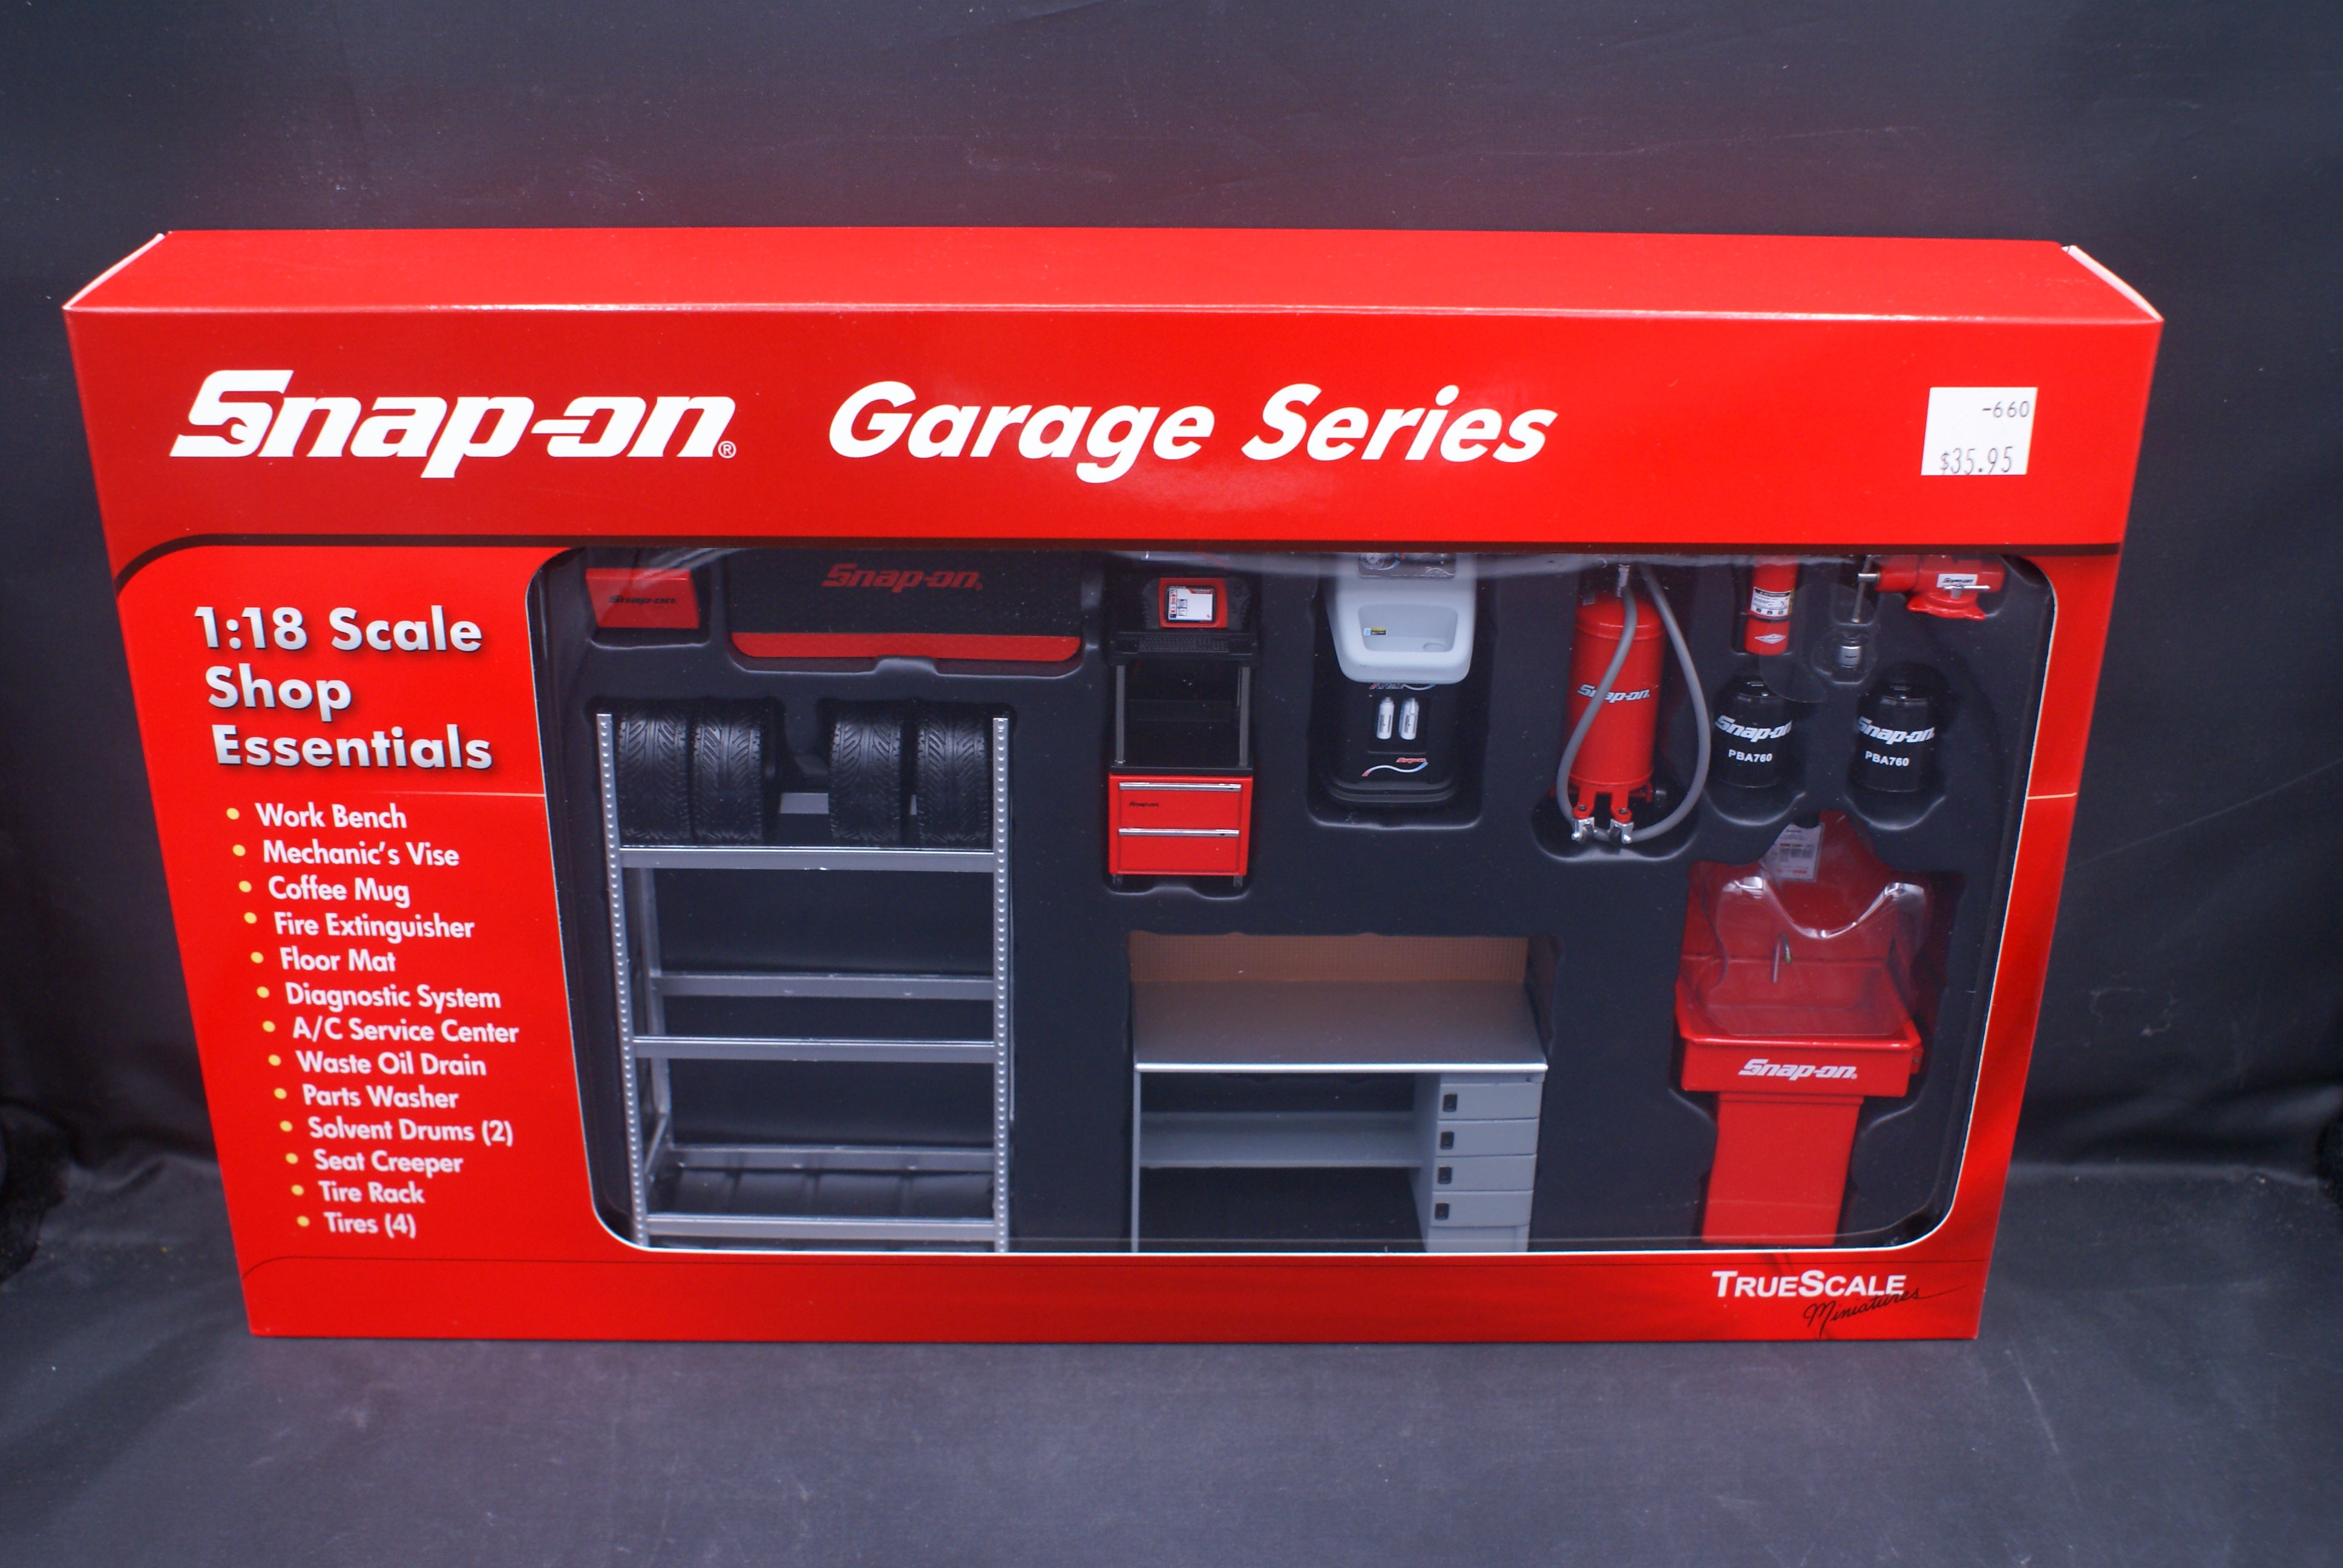 Snap-On Garage, Shop Essentials